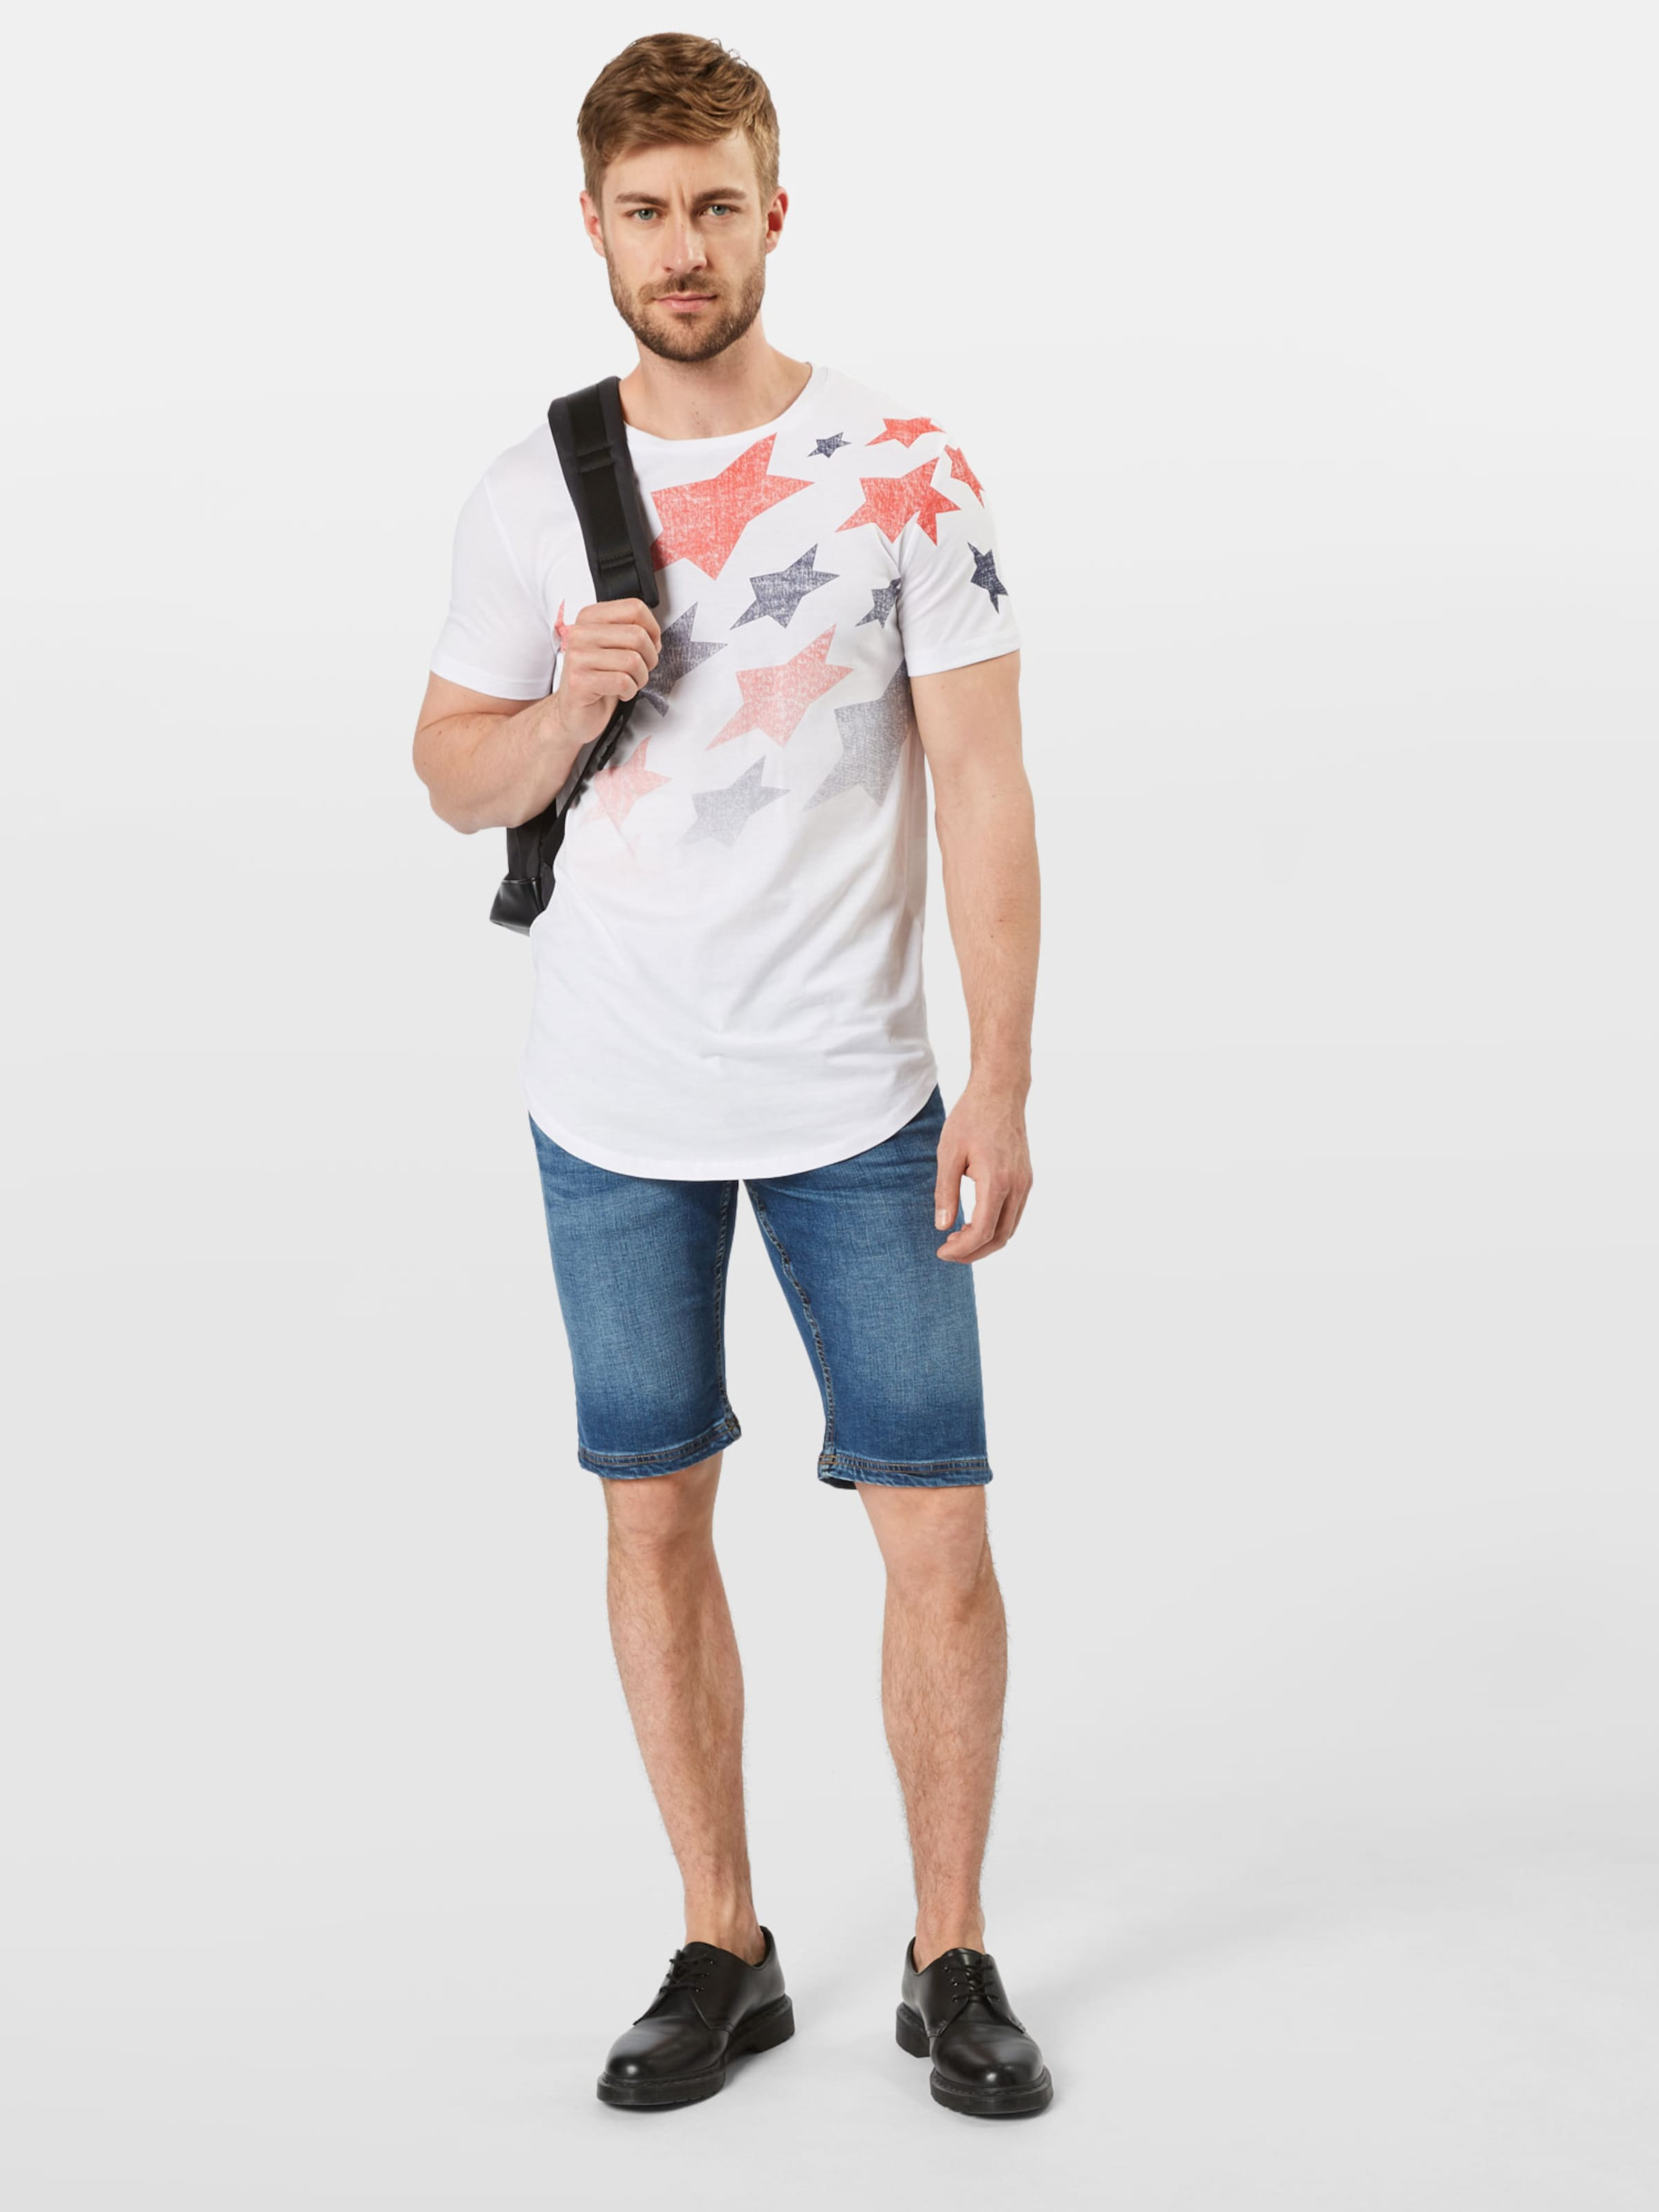 Tom Tailor T Denim Weiß In shirt eH92bYWDIE